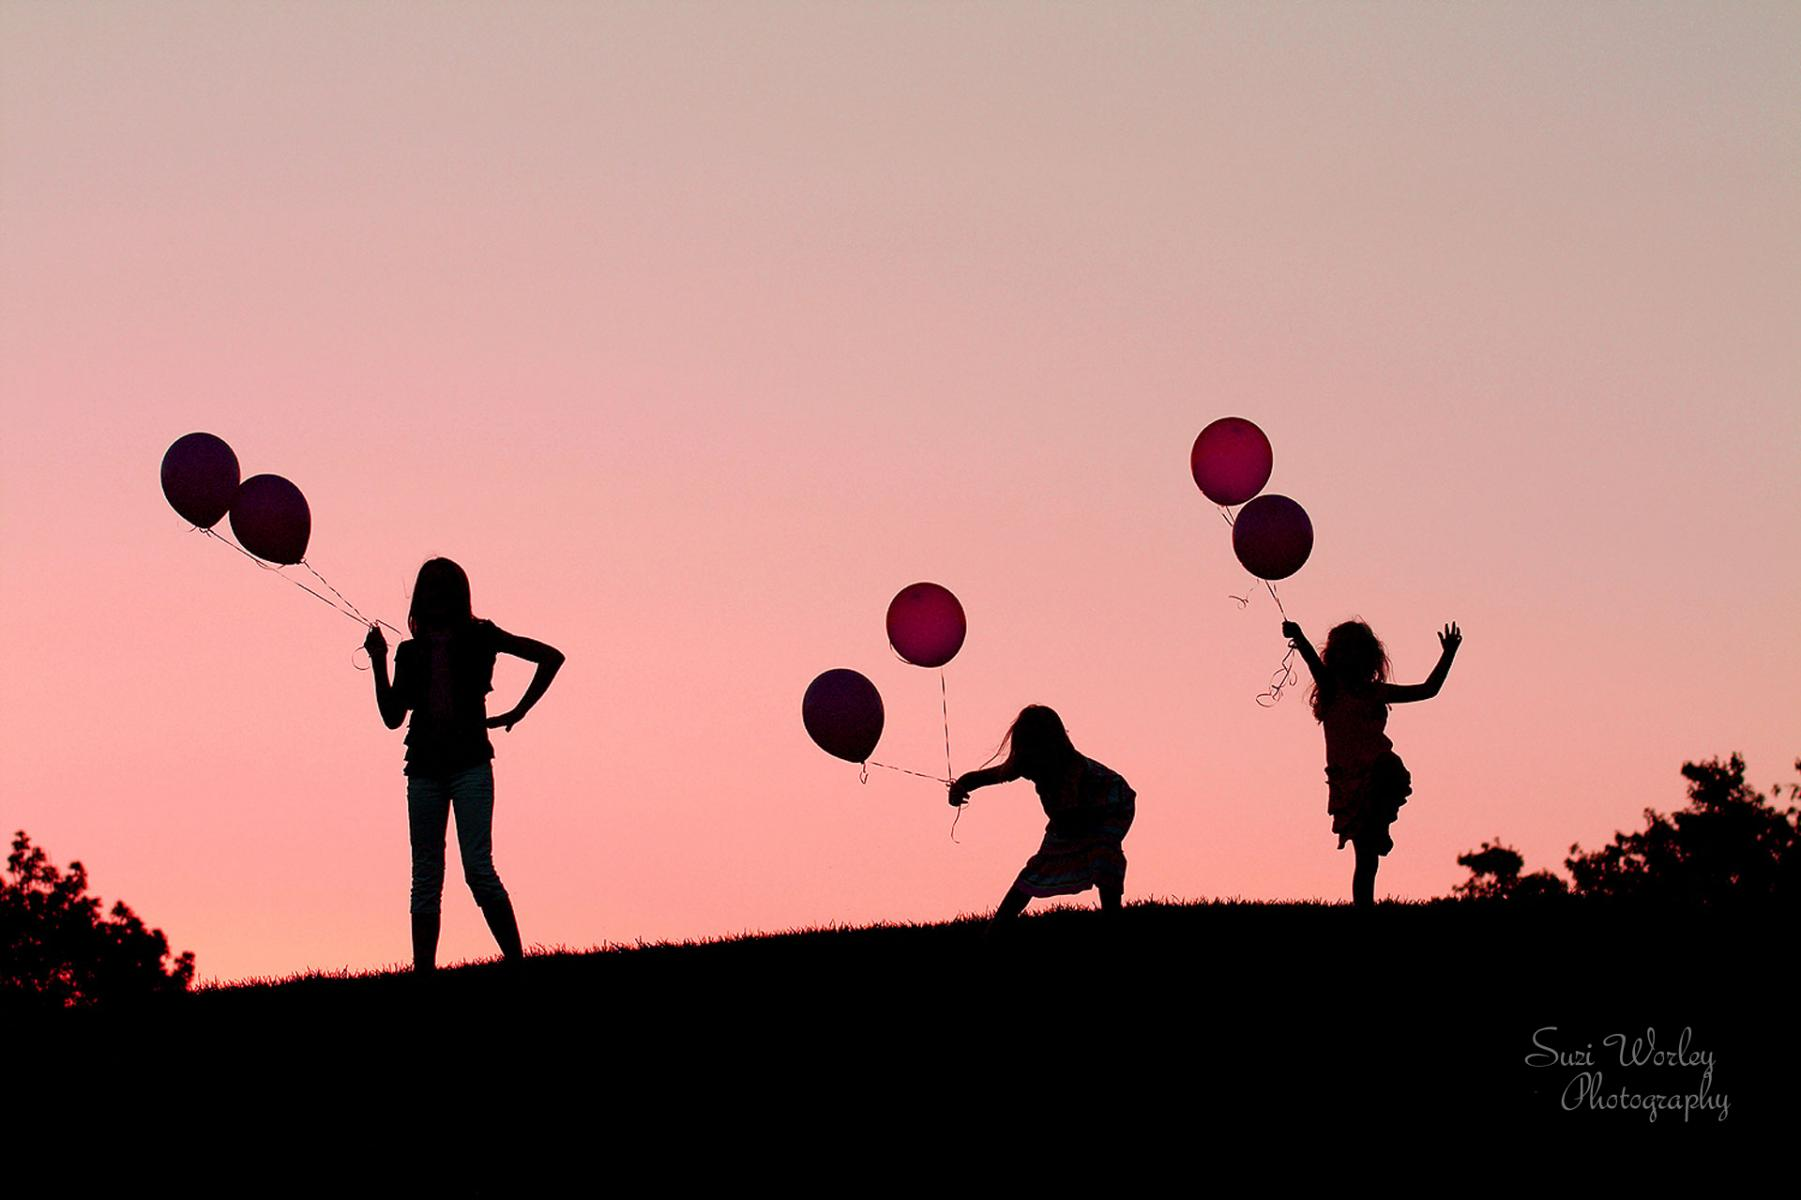 Sunset silhouette  #SuziWorleyPhotography #FamilyPictures #Balloons